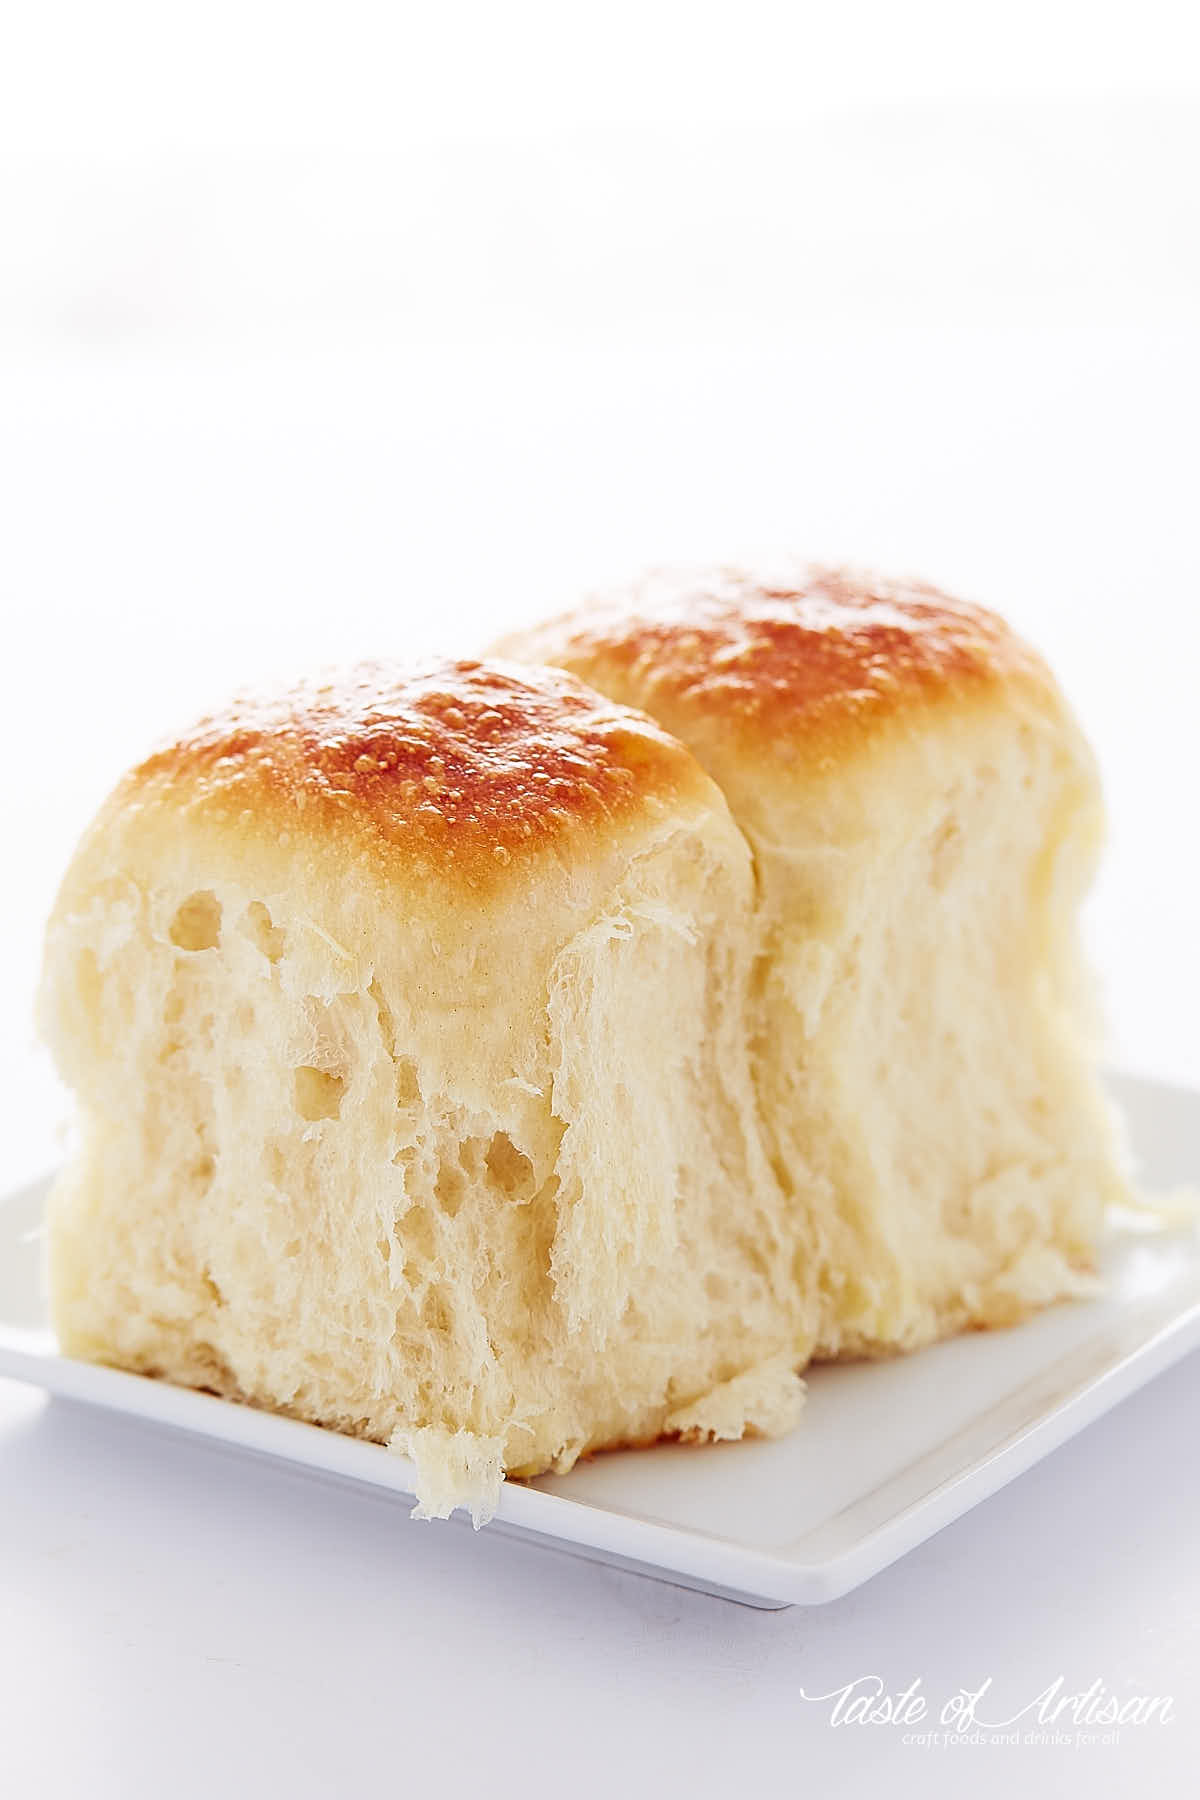 Two yeast rolls with golden brown tops on a white plate.